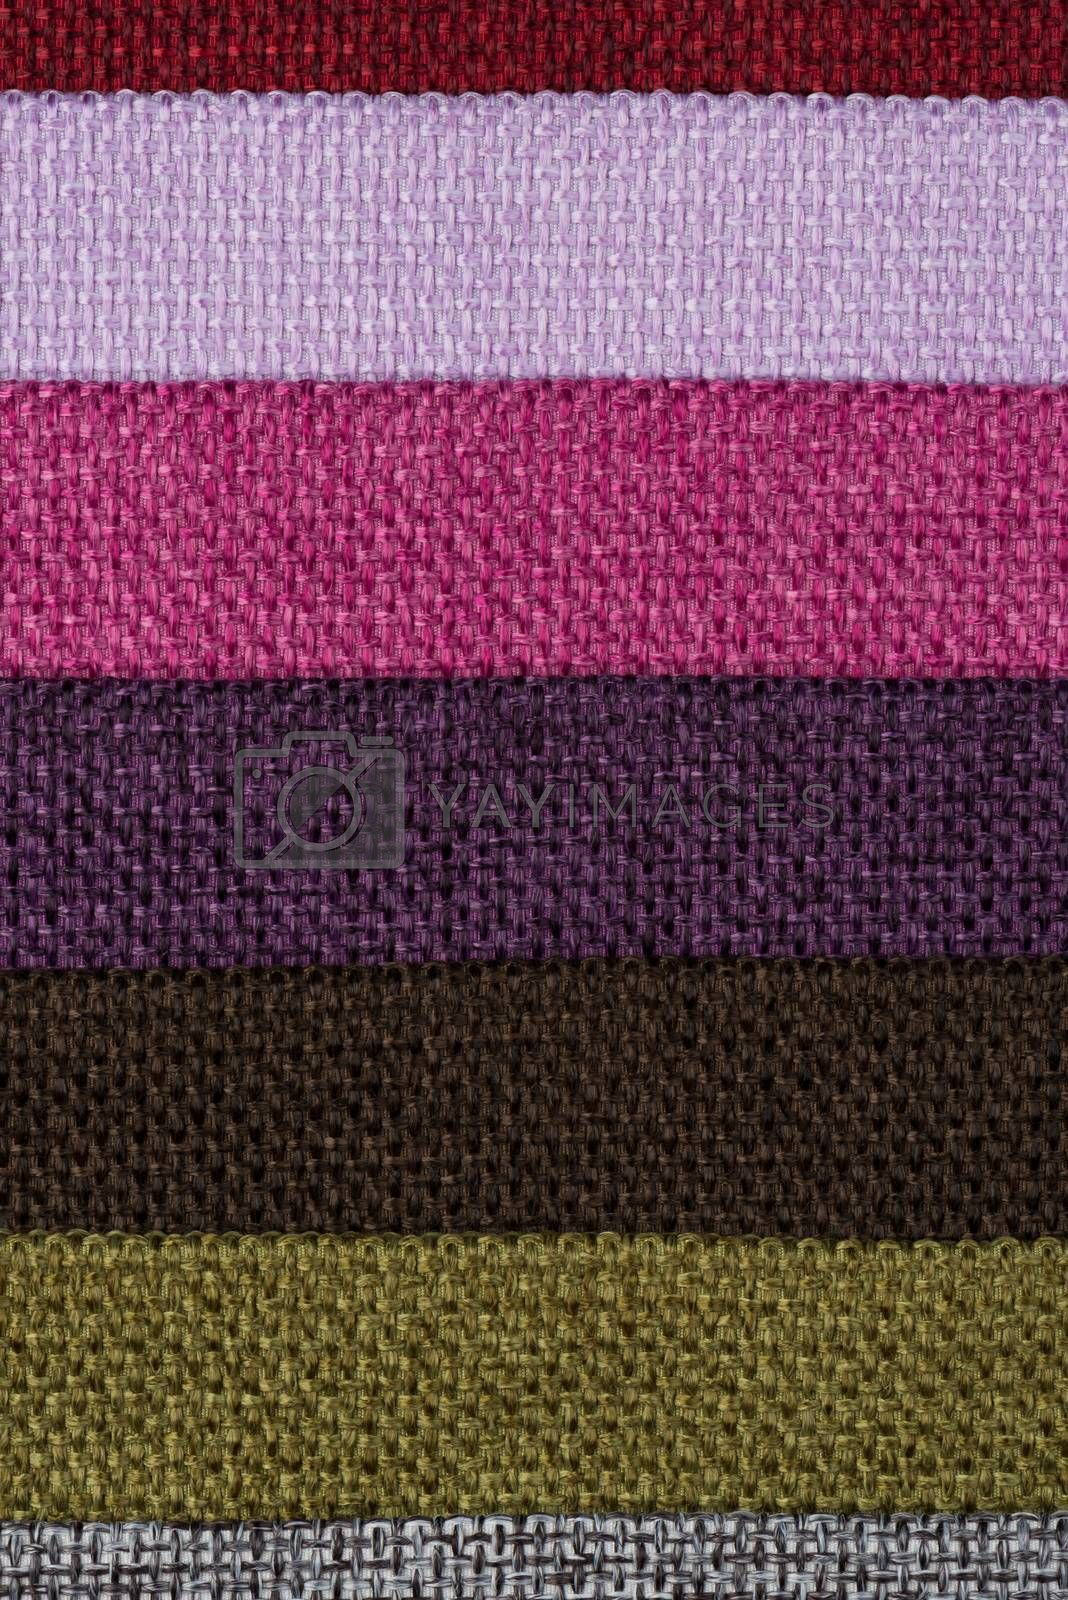 Fabric samples by homydesign